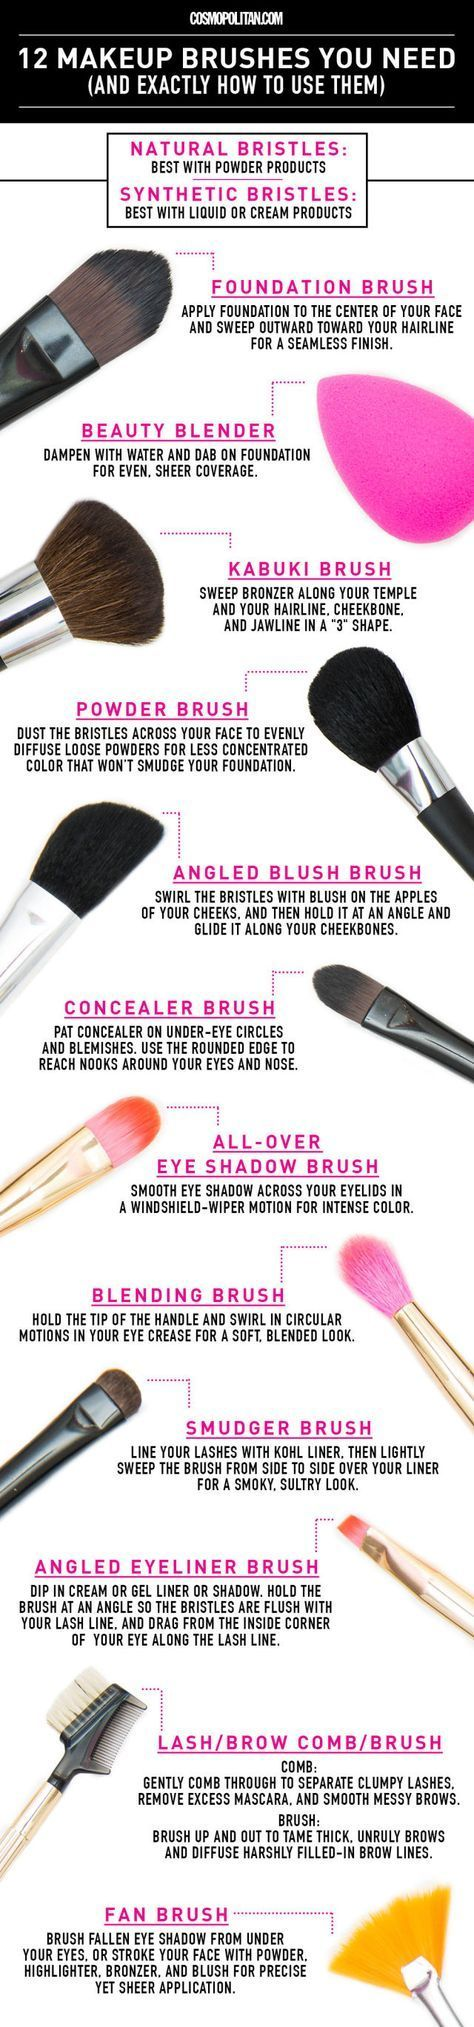 12 Makeup Brushes You Need and Exactly How to Use Them - They come in different ...